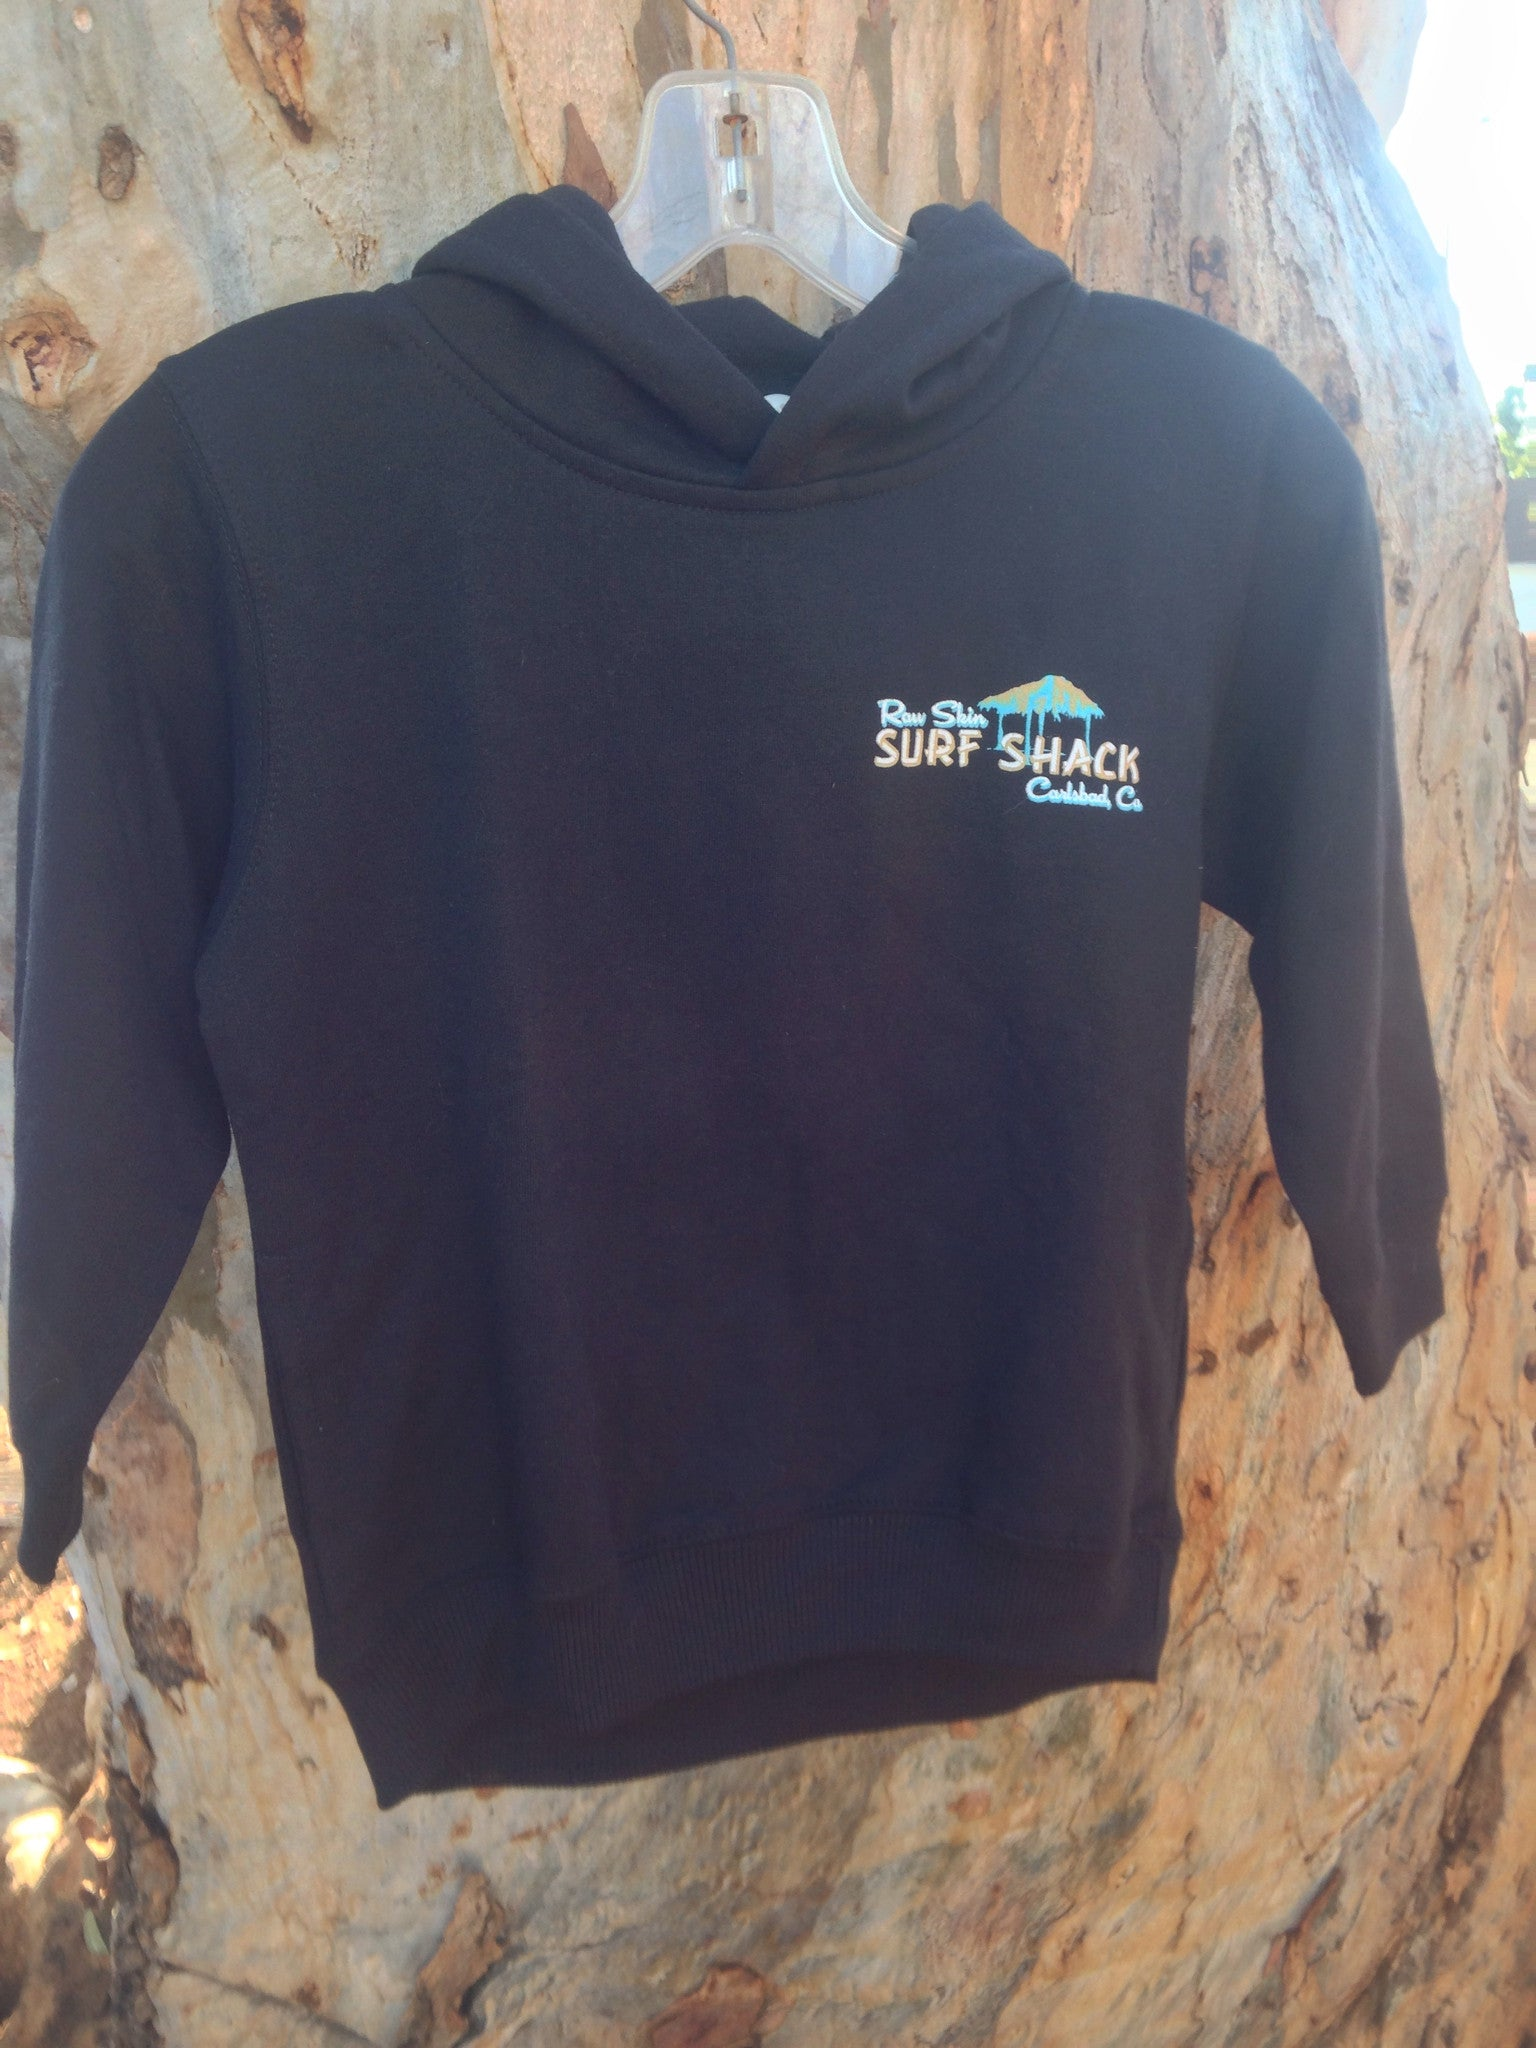 Shortboarders Youth Pull Over Sweatshirt